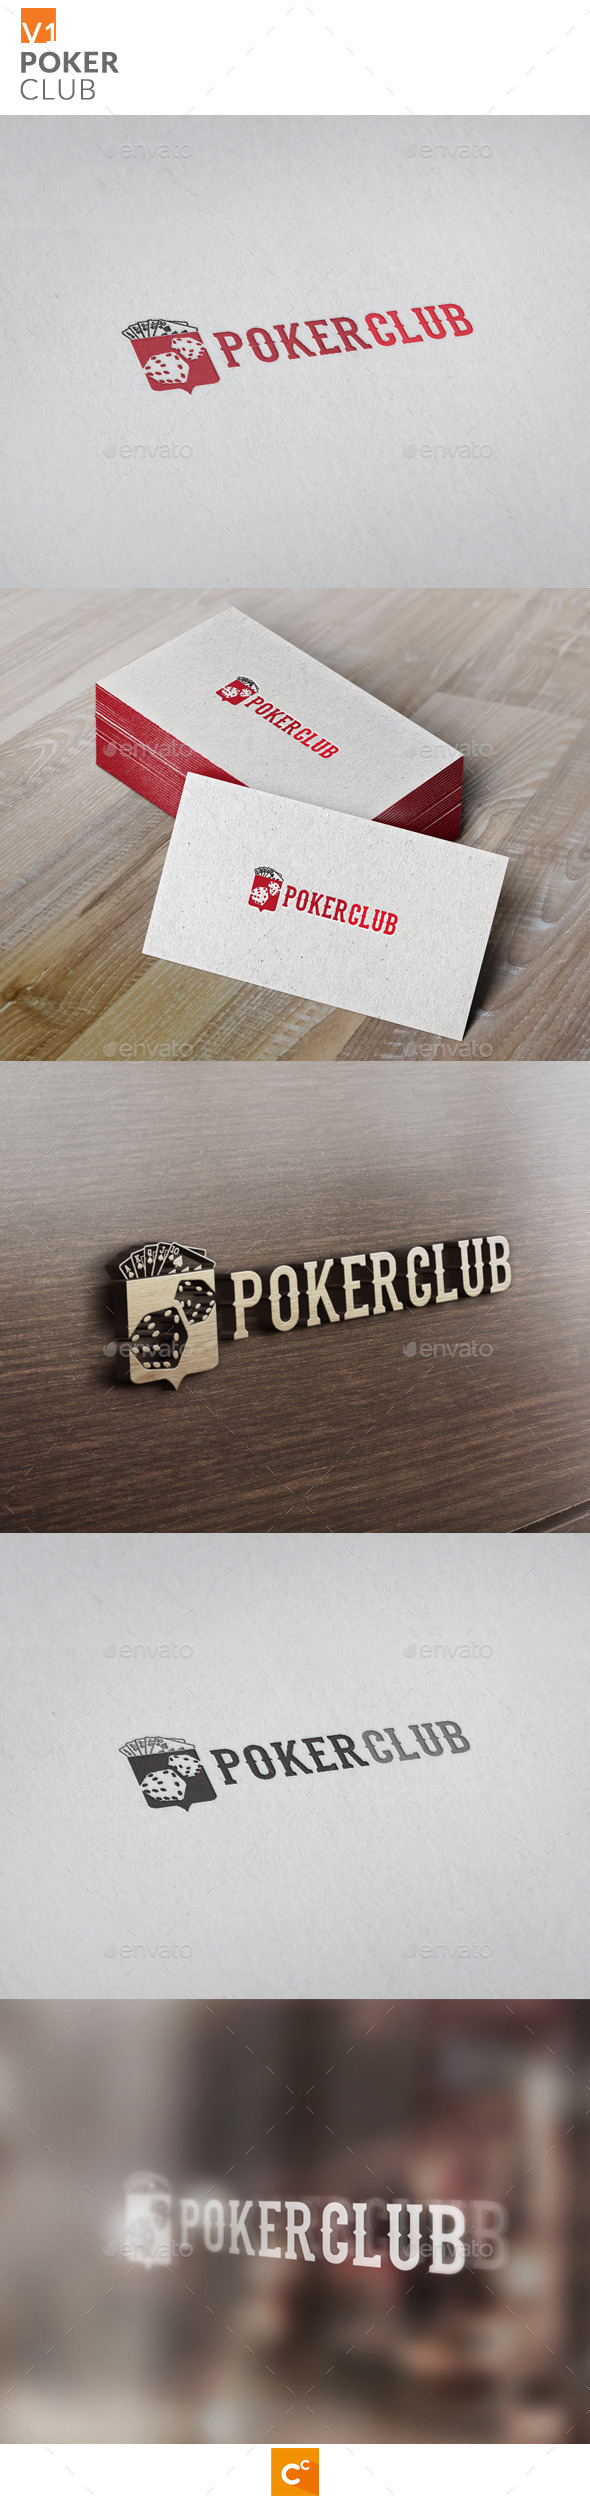 GraphicRiver Poker Club v2 11129286